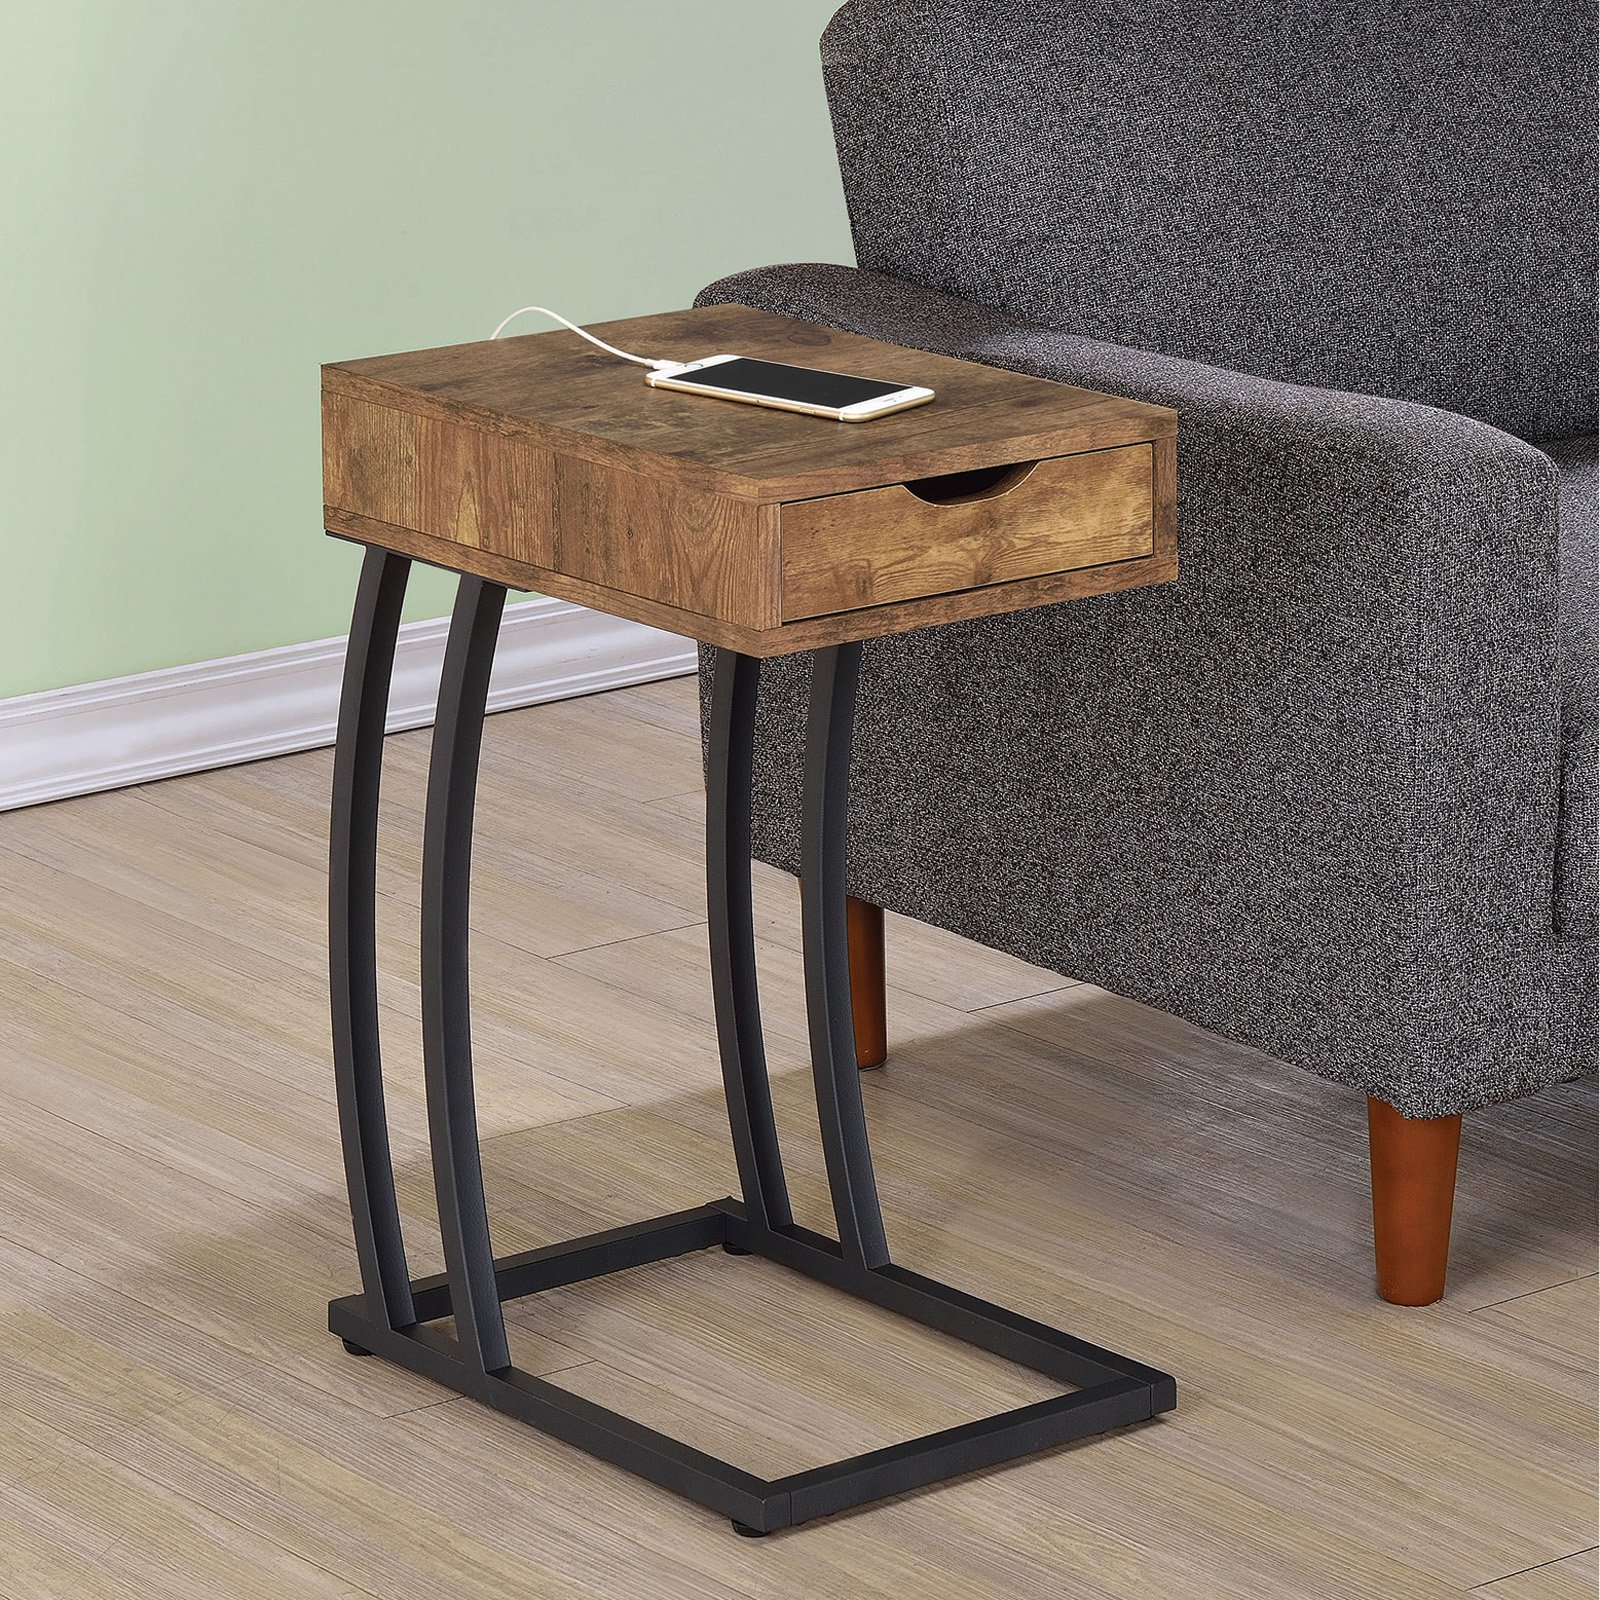 Coaster Furniture Metal and Wood C-Shaped Accent Table by Coaster